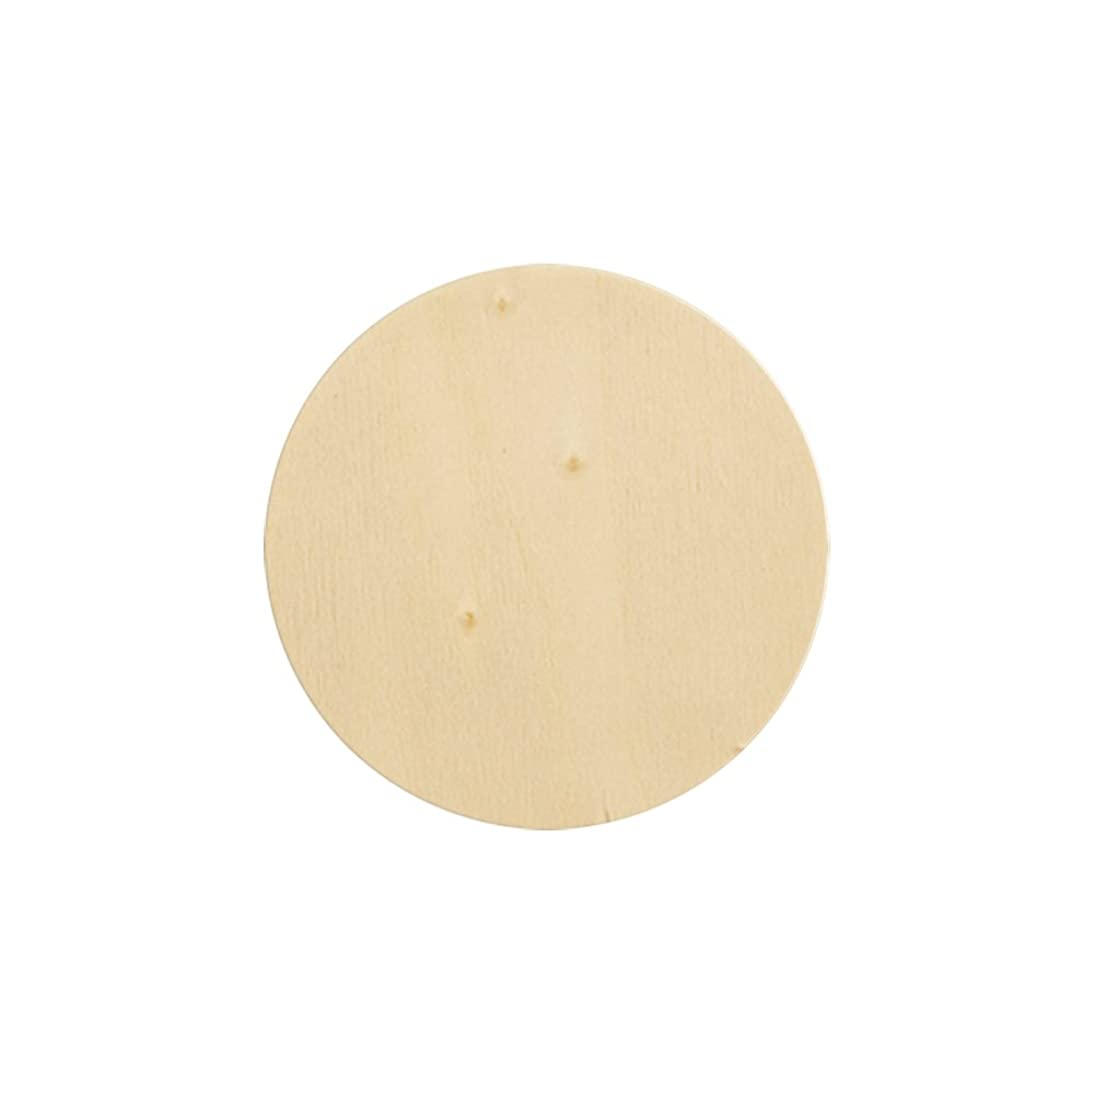 Natural Unfinished Round Wood Circle Cutout 5 Inch - Bag of 10